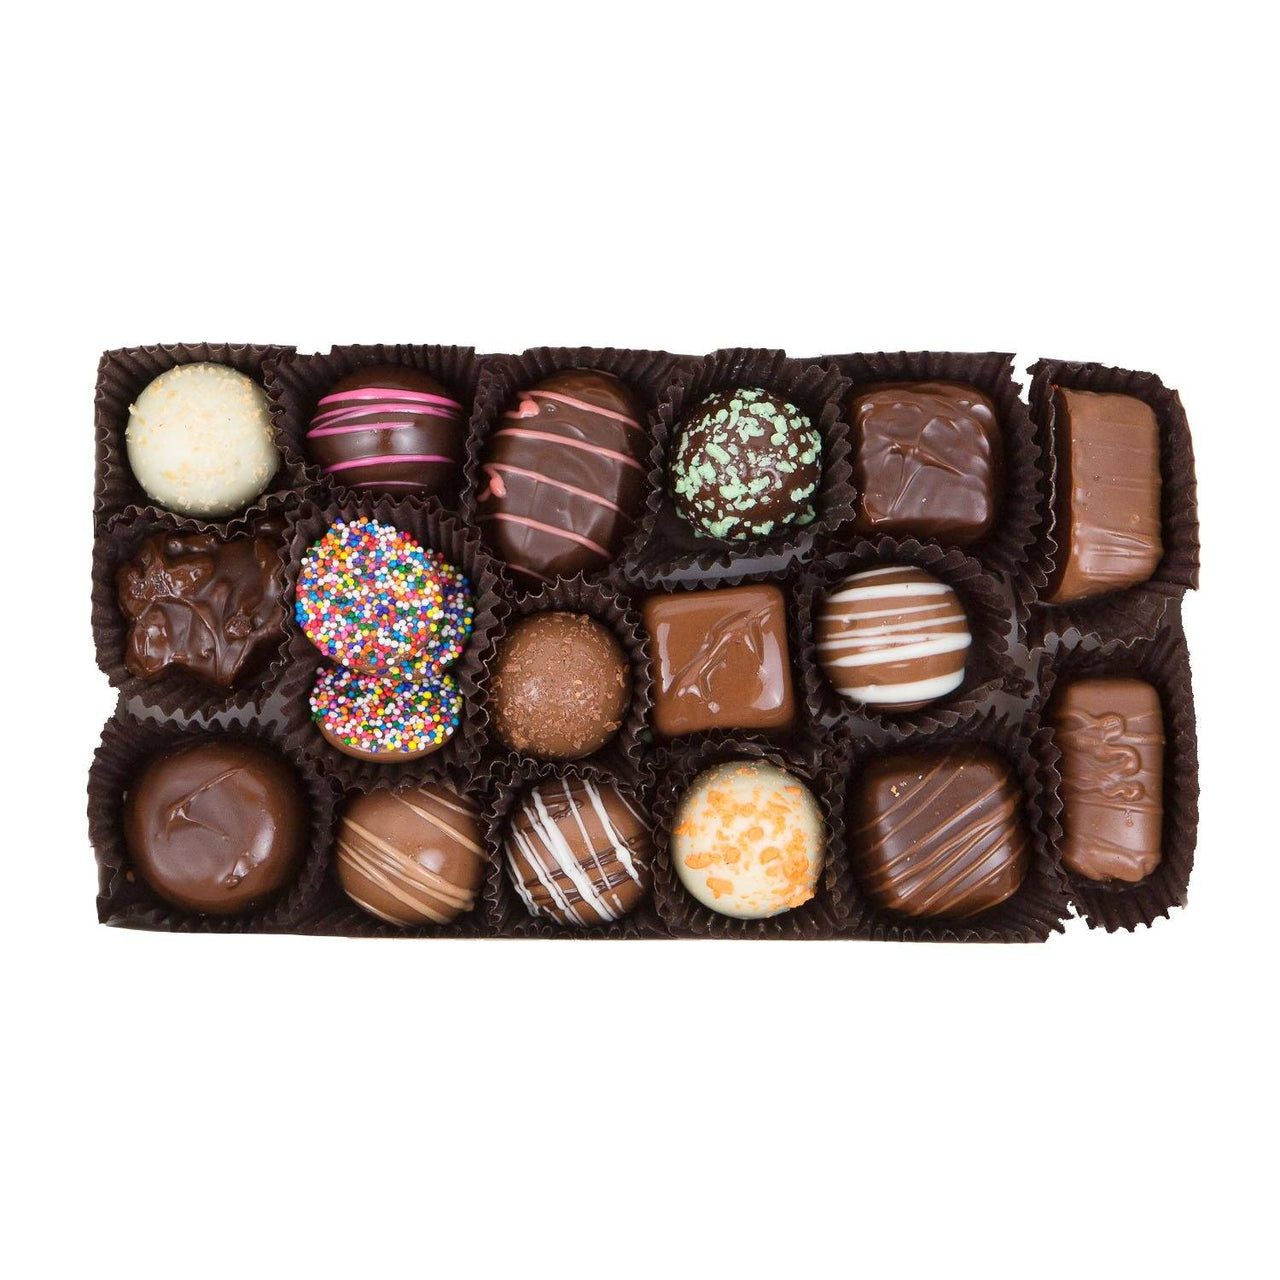 Gifts for Sister in Law - Assorted Chocolate Gift Box - Jackie's Chocolate (1487129739299)